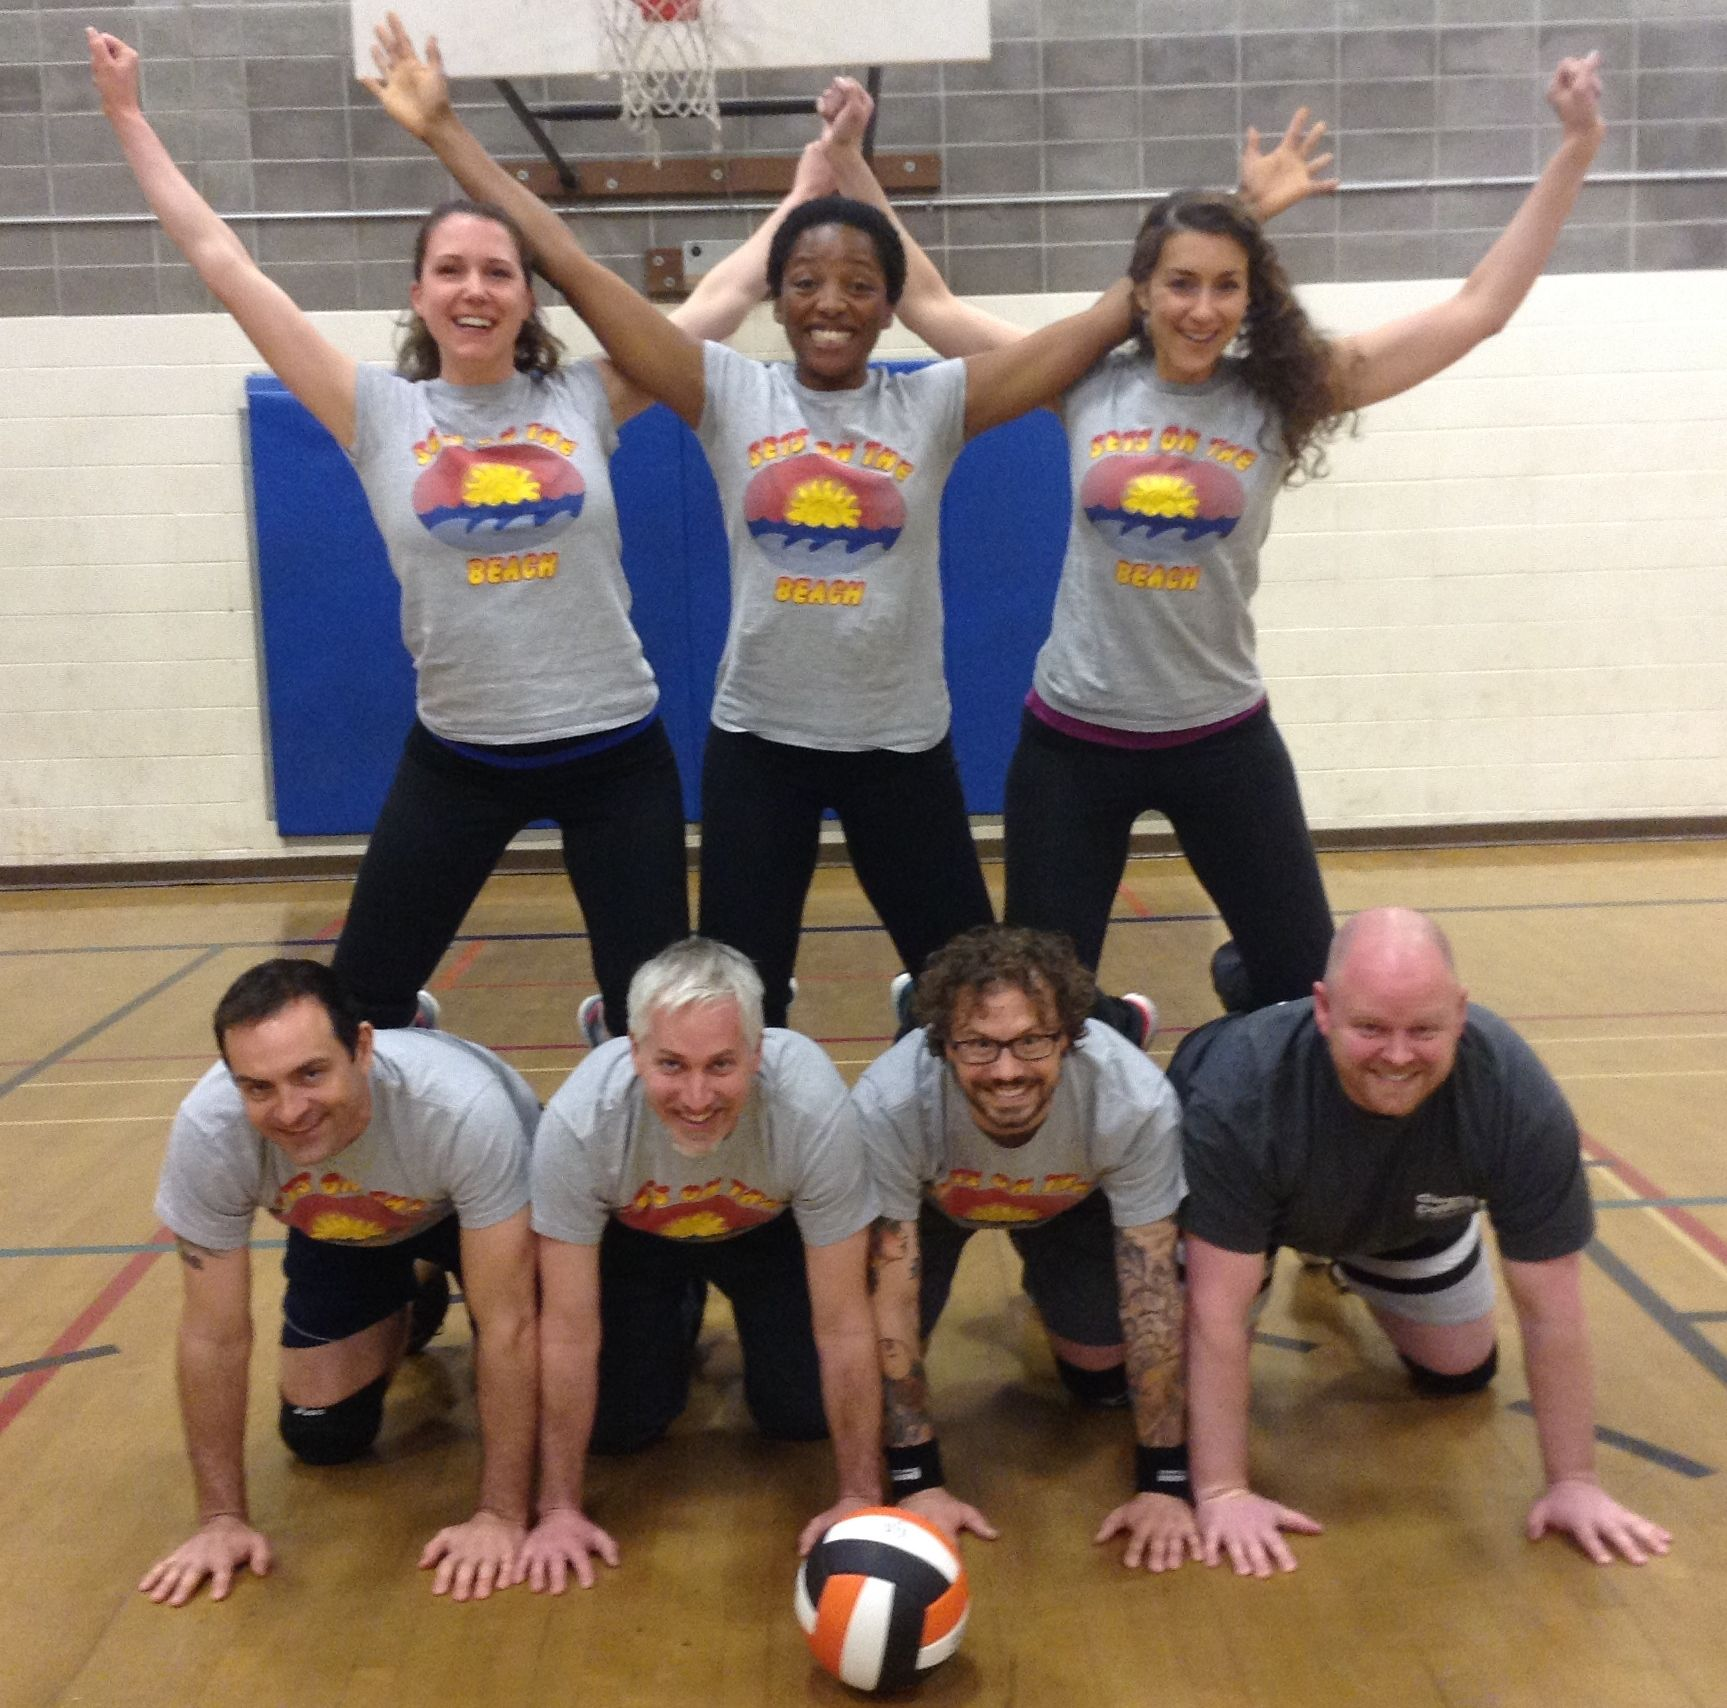 Indoor Volleyball Leagues Beach Volleyball Portland Indoor Volleyball Beach Volleyball Team Photos